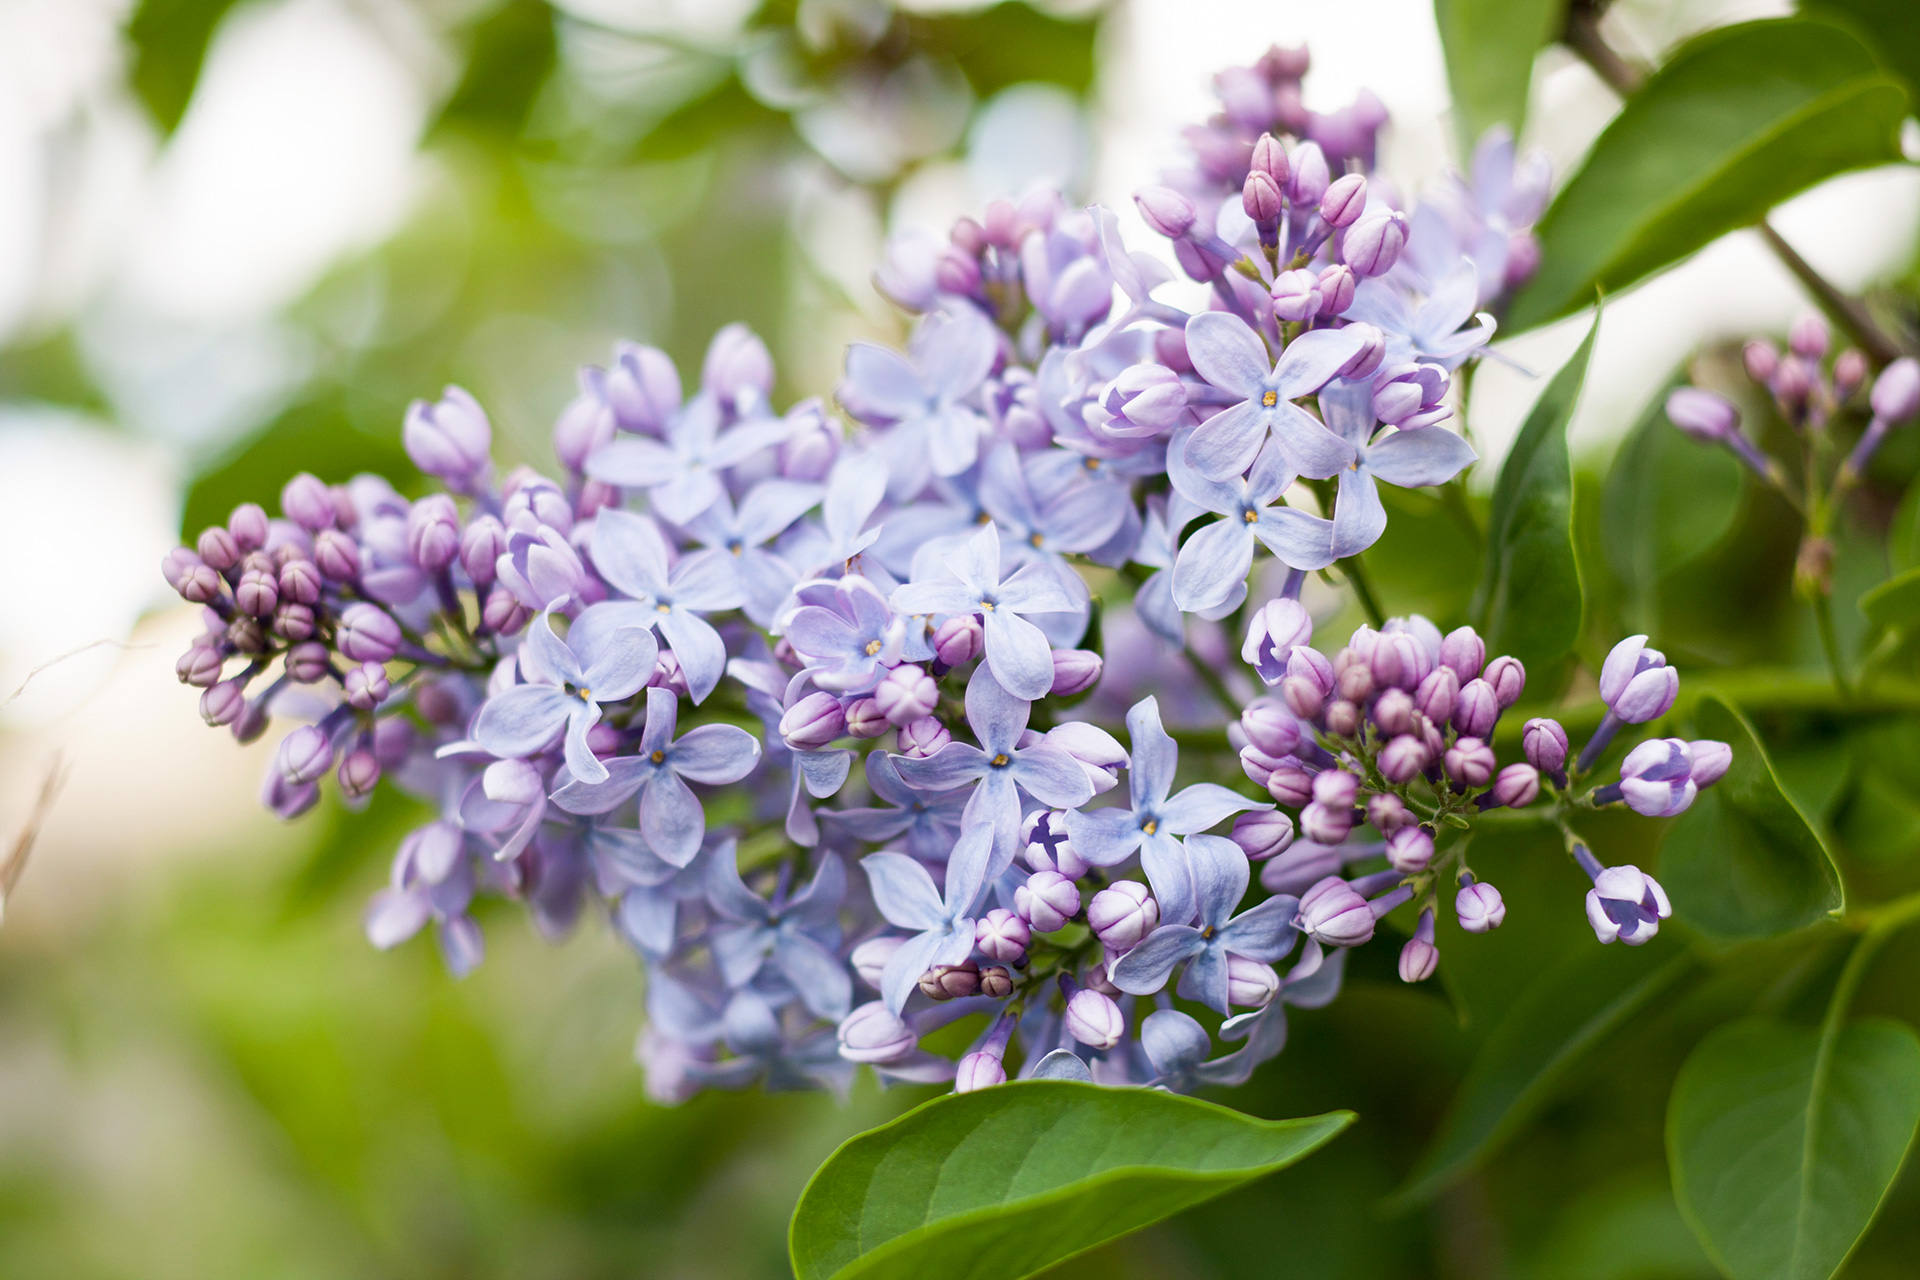 blooming violet lilac flowers